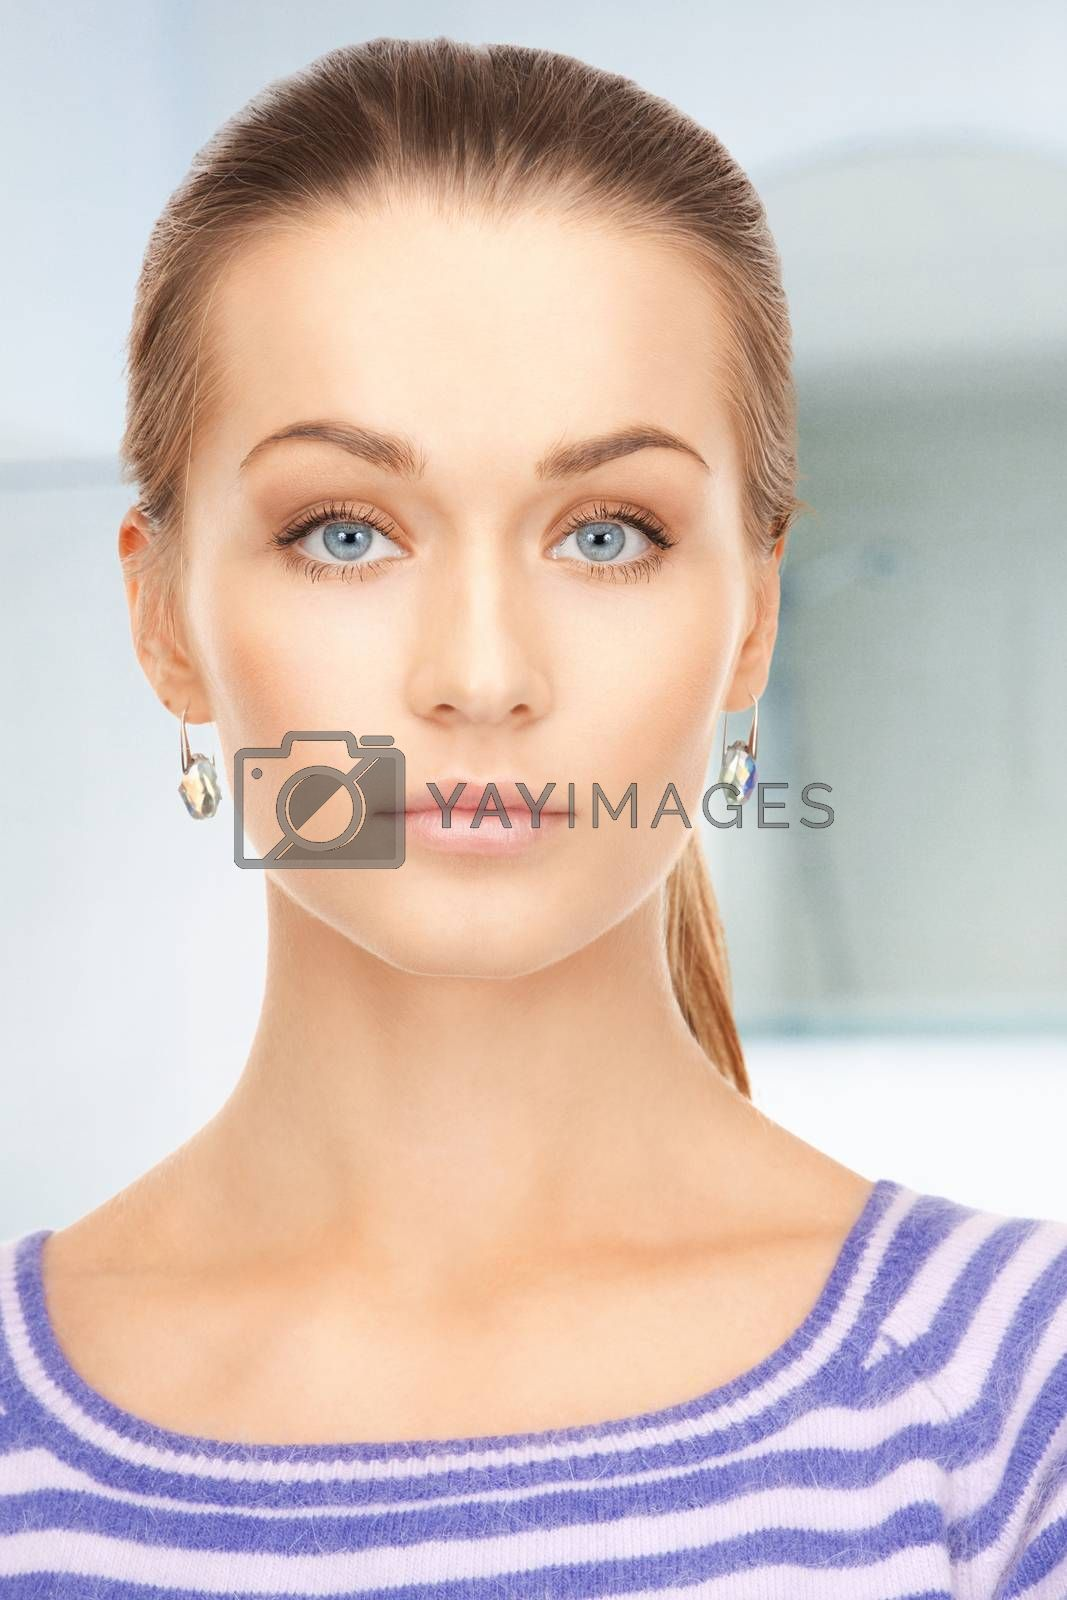 lovely woman in striped sweater by dolgachov